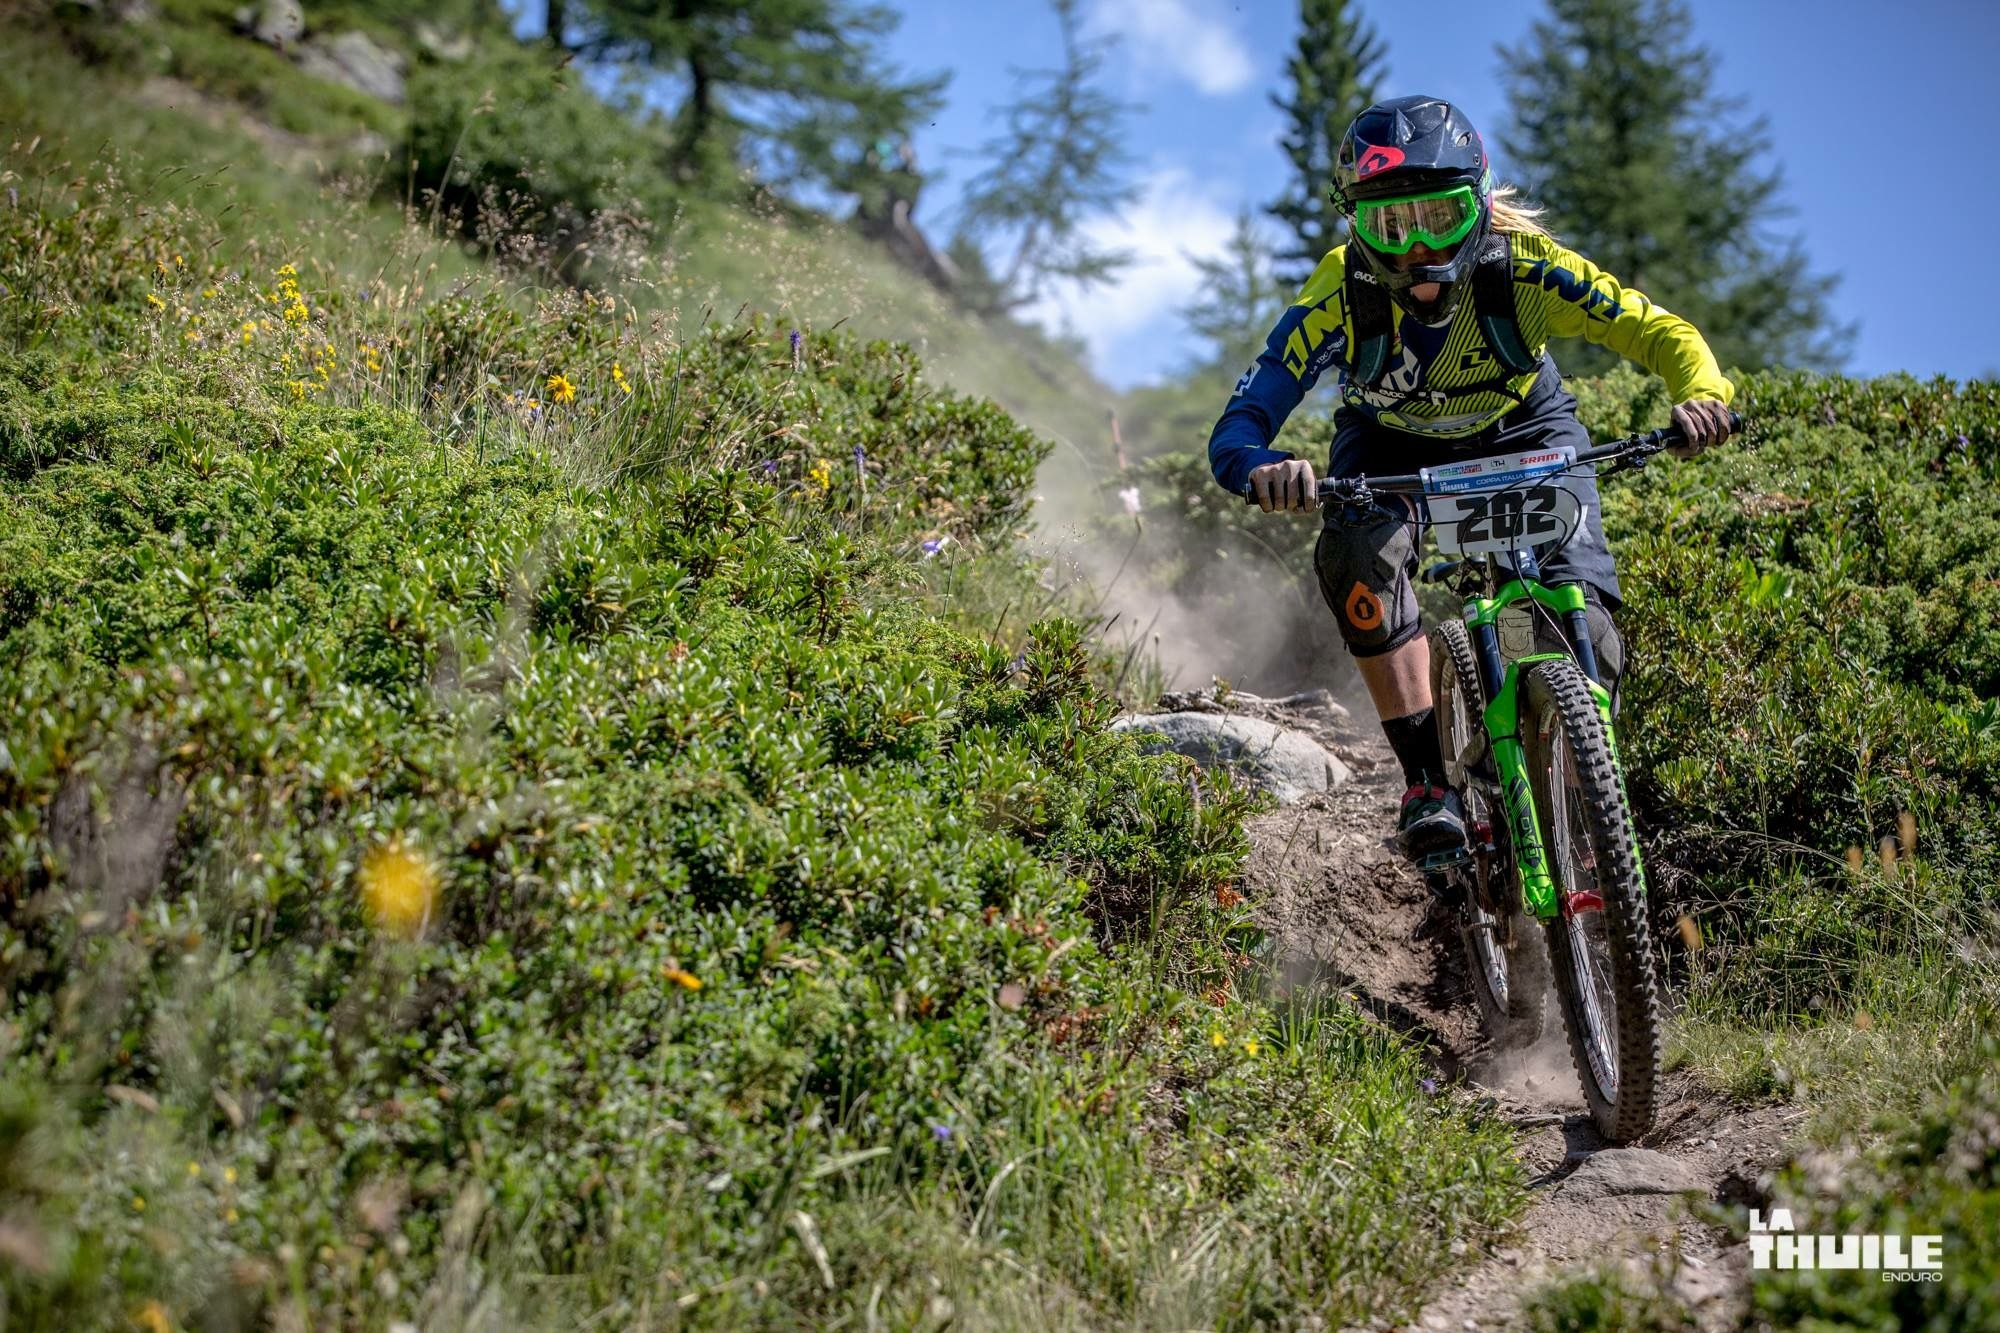 La Thuile Valle d'Aosta  Summer time!  Perfect destination for a day on the Enduro World Series trails!